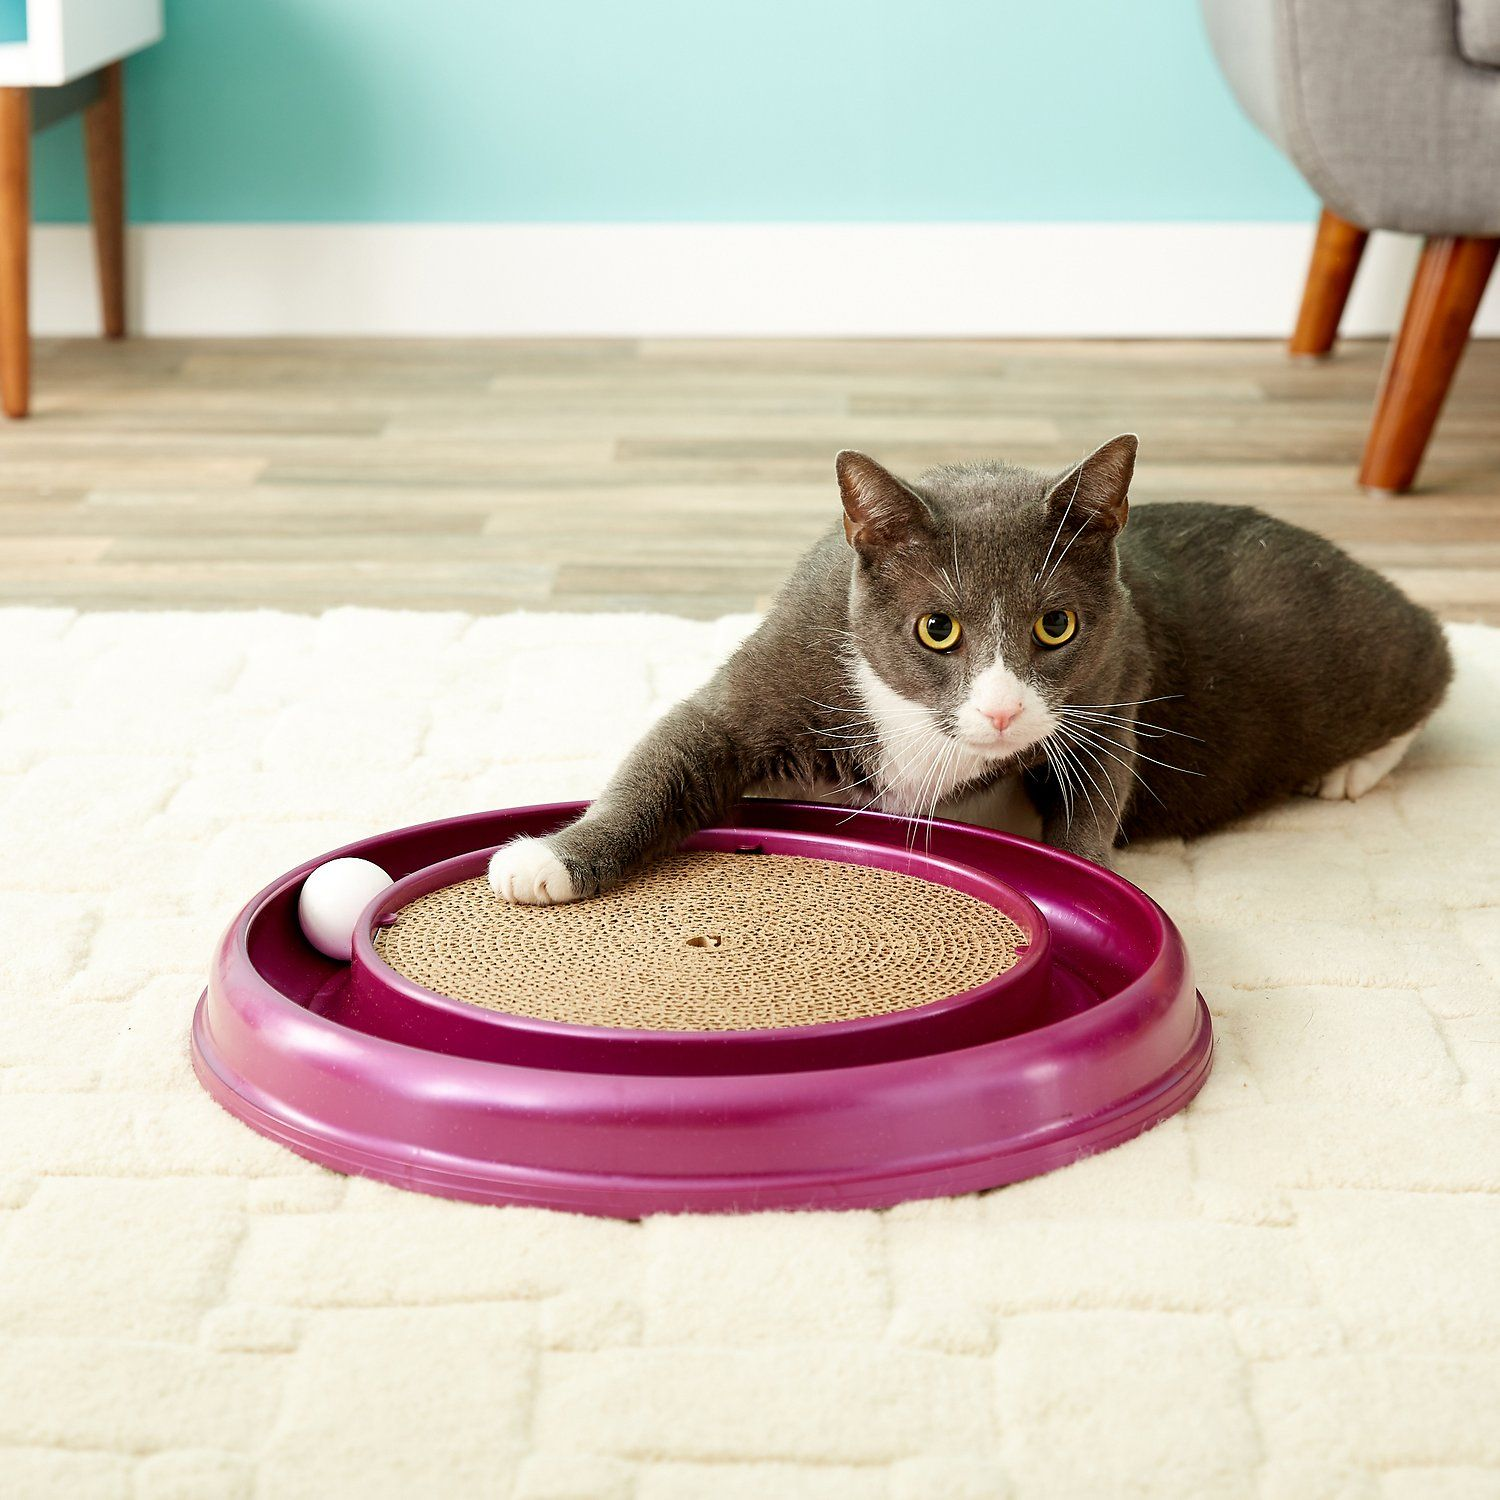 The famous Turbo Scratcher cat toy offers hours of fun and